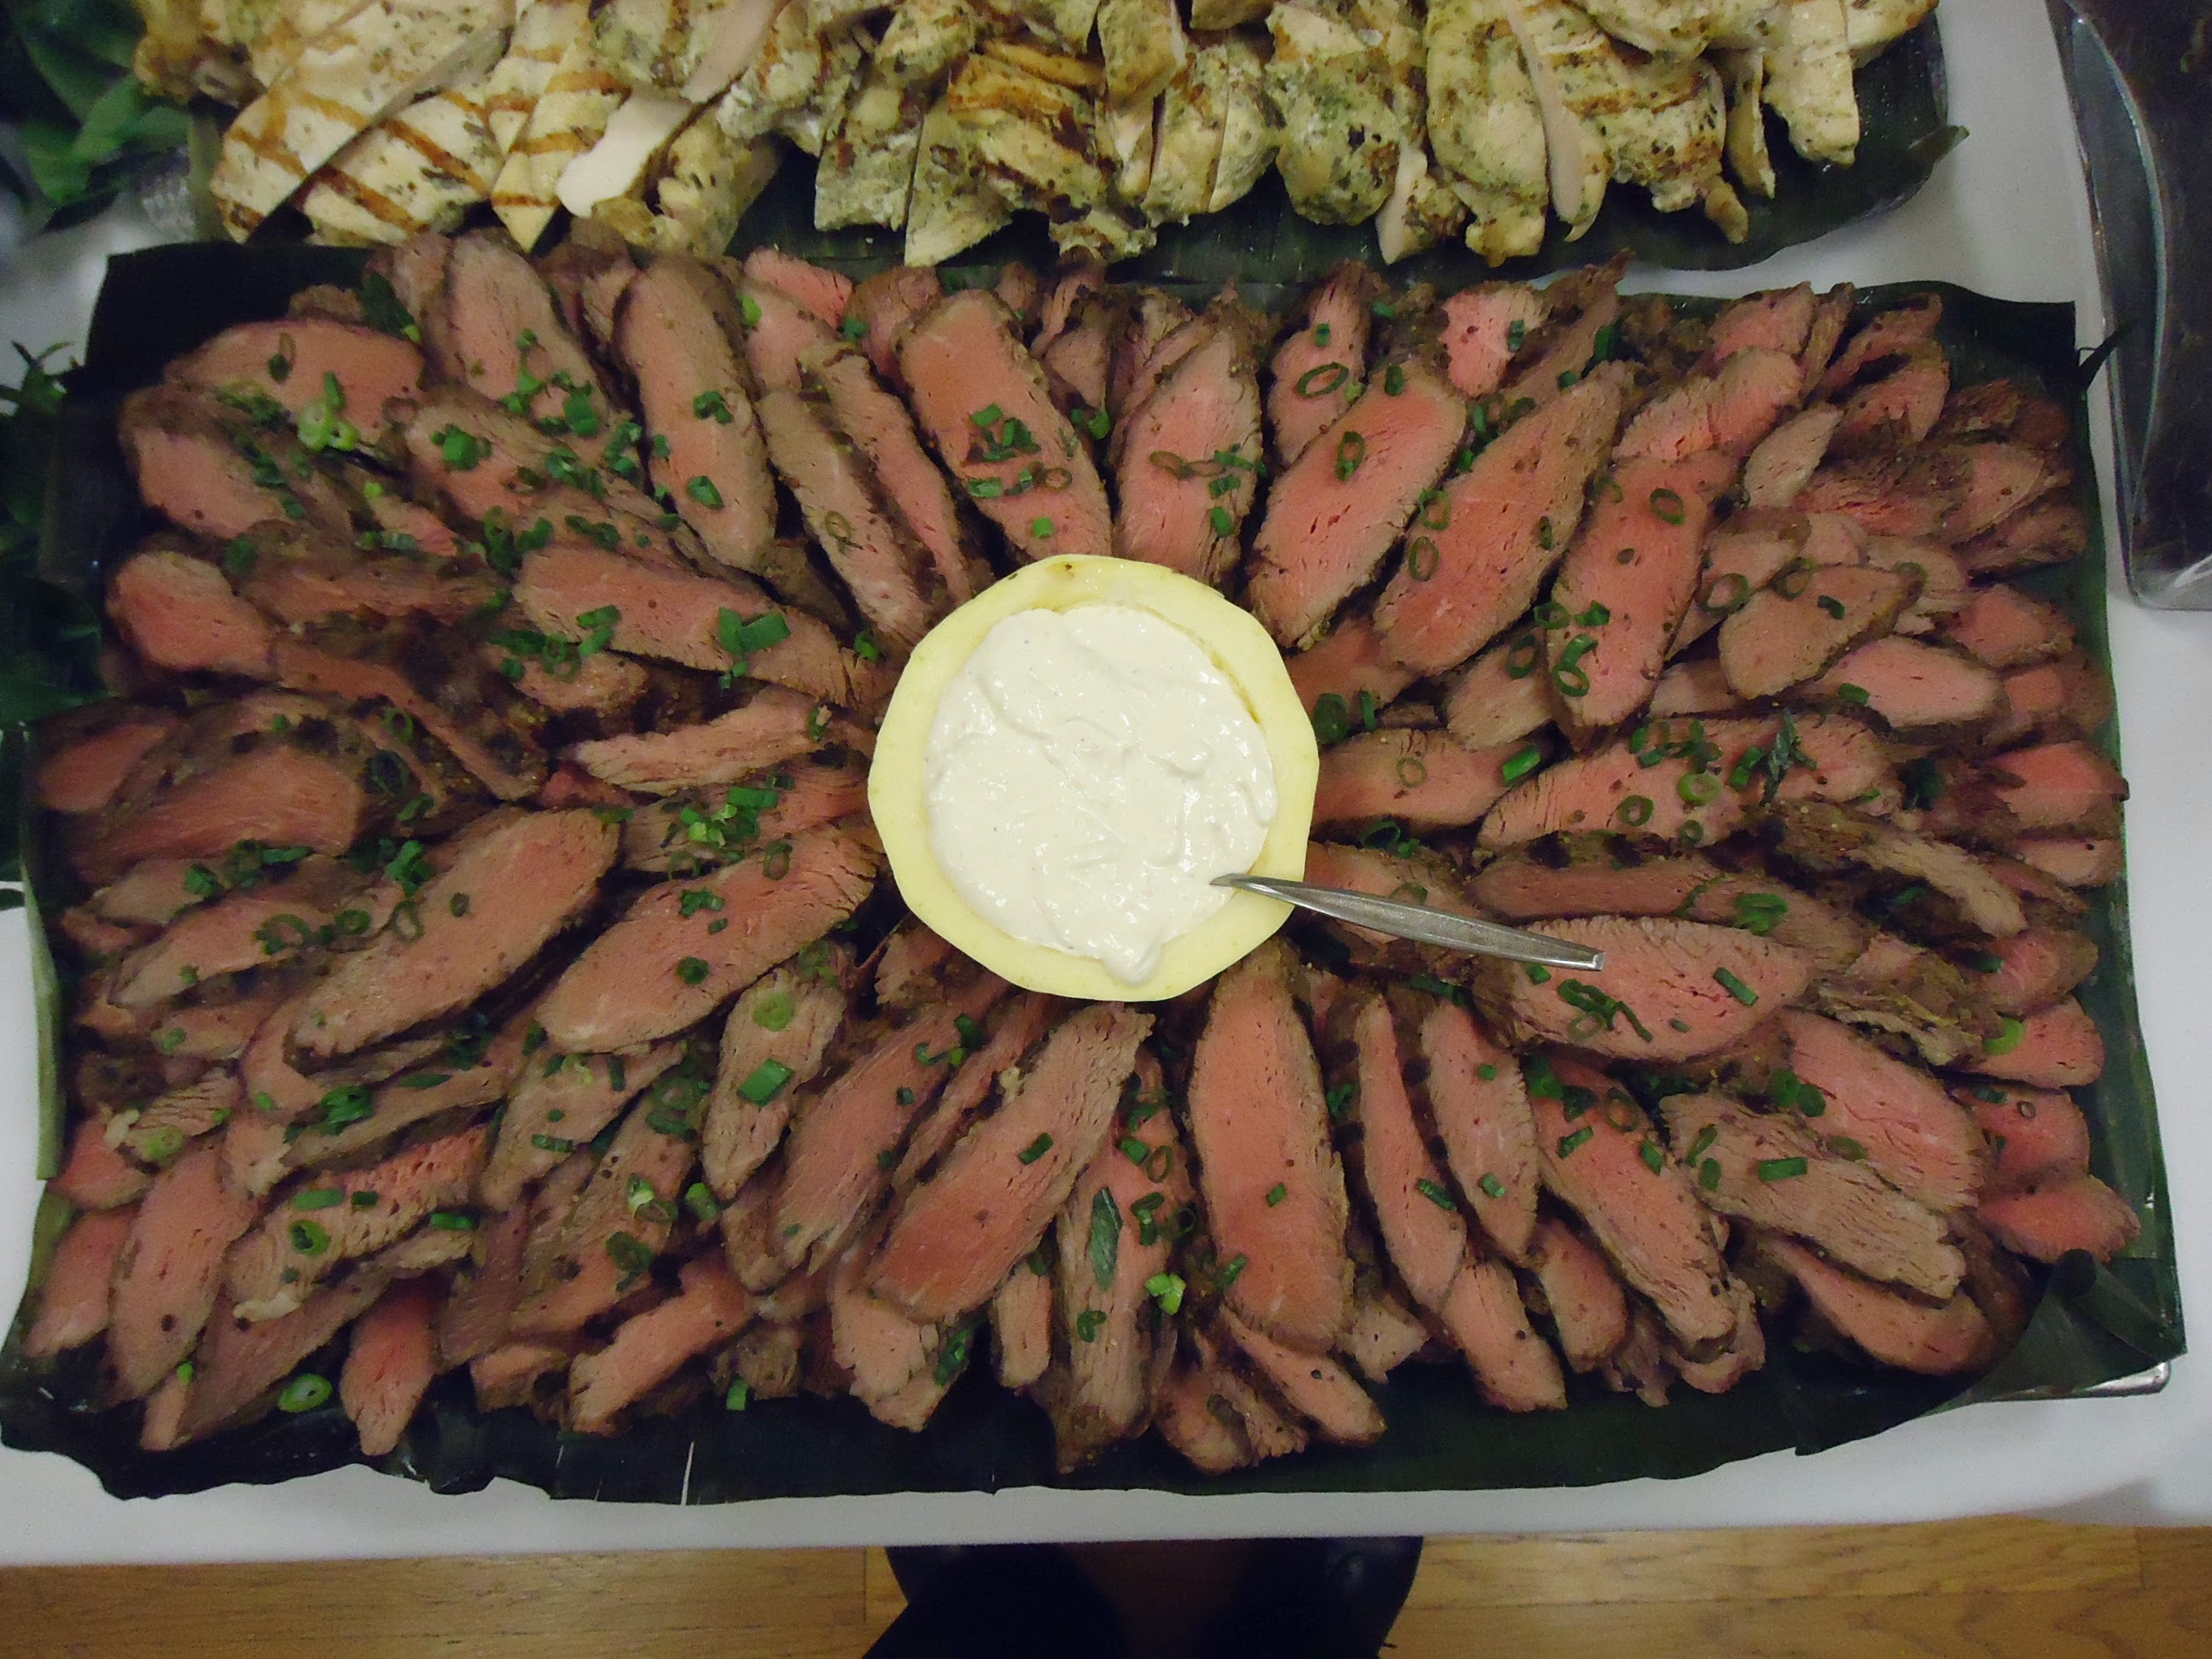 File Beef Steak Slices On A Platter With Sauce Jpg Wikimedia Commons